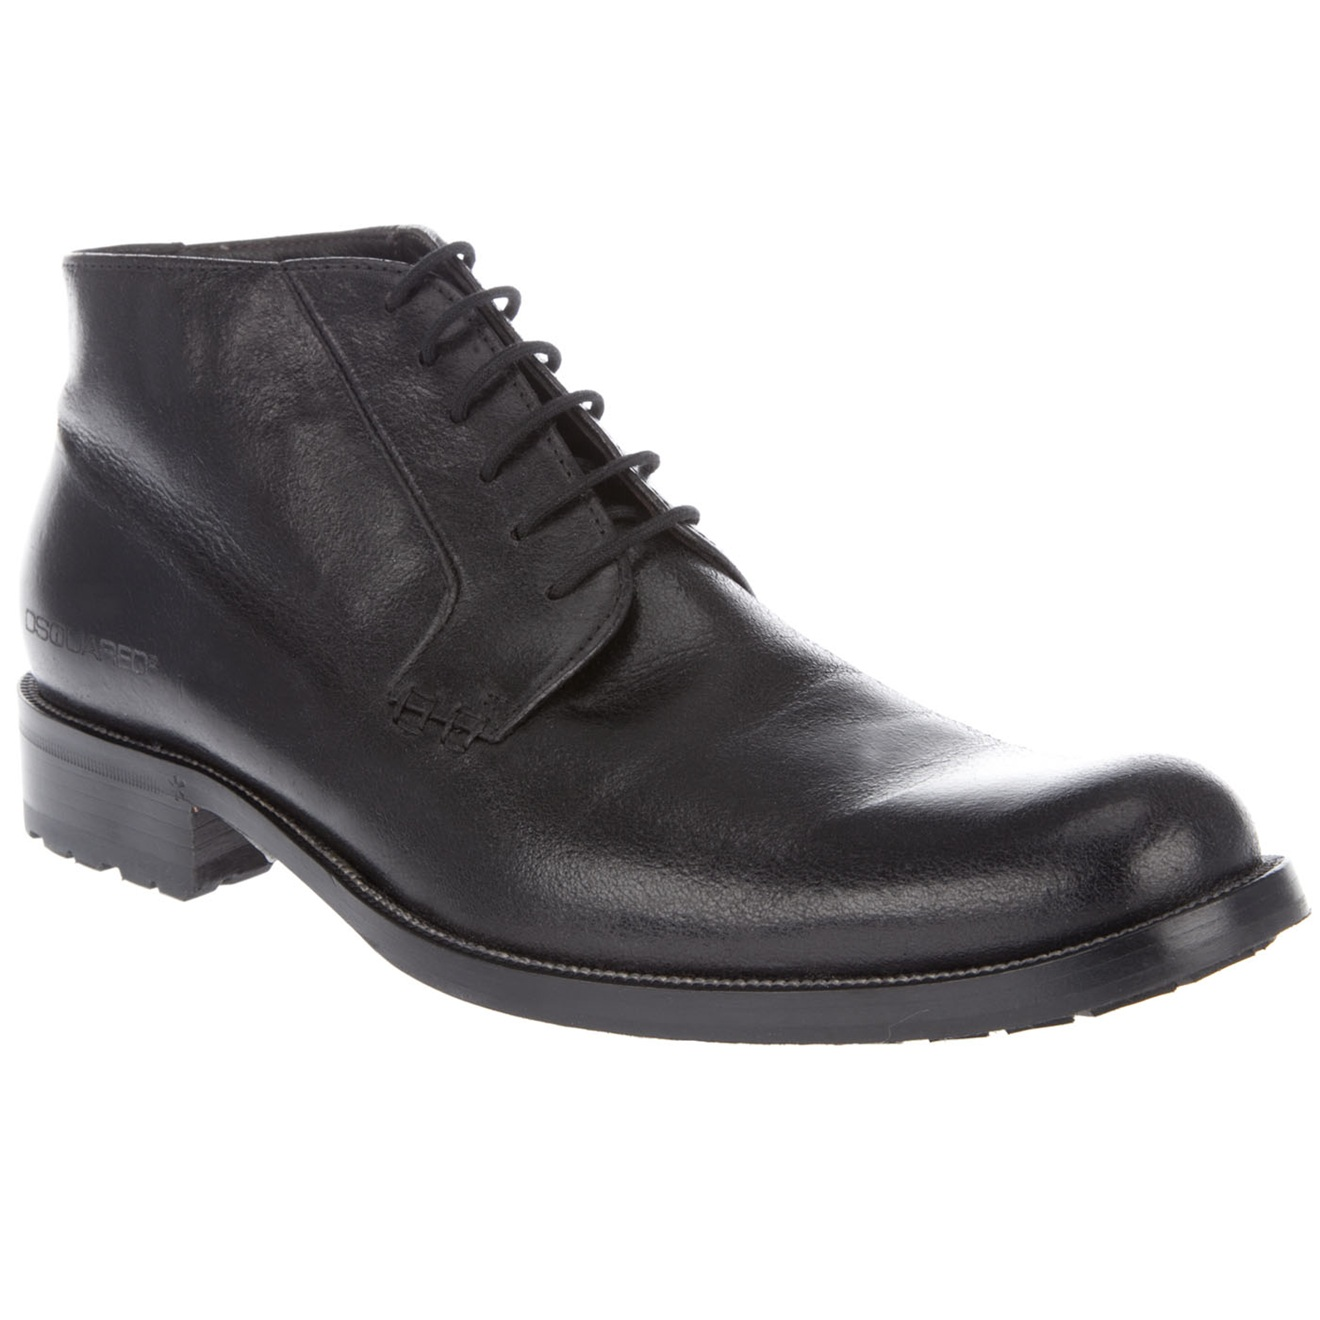 dsquared2 low cut leather ankle boot in black for lyst